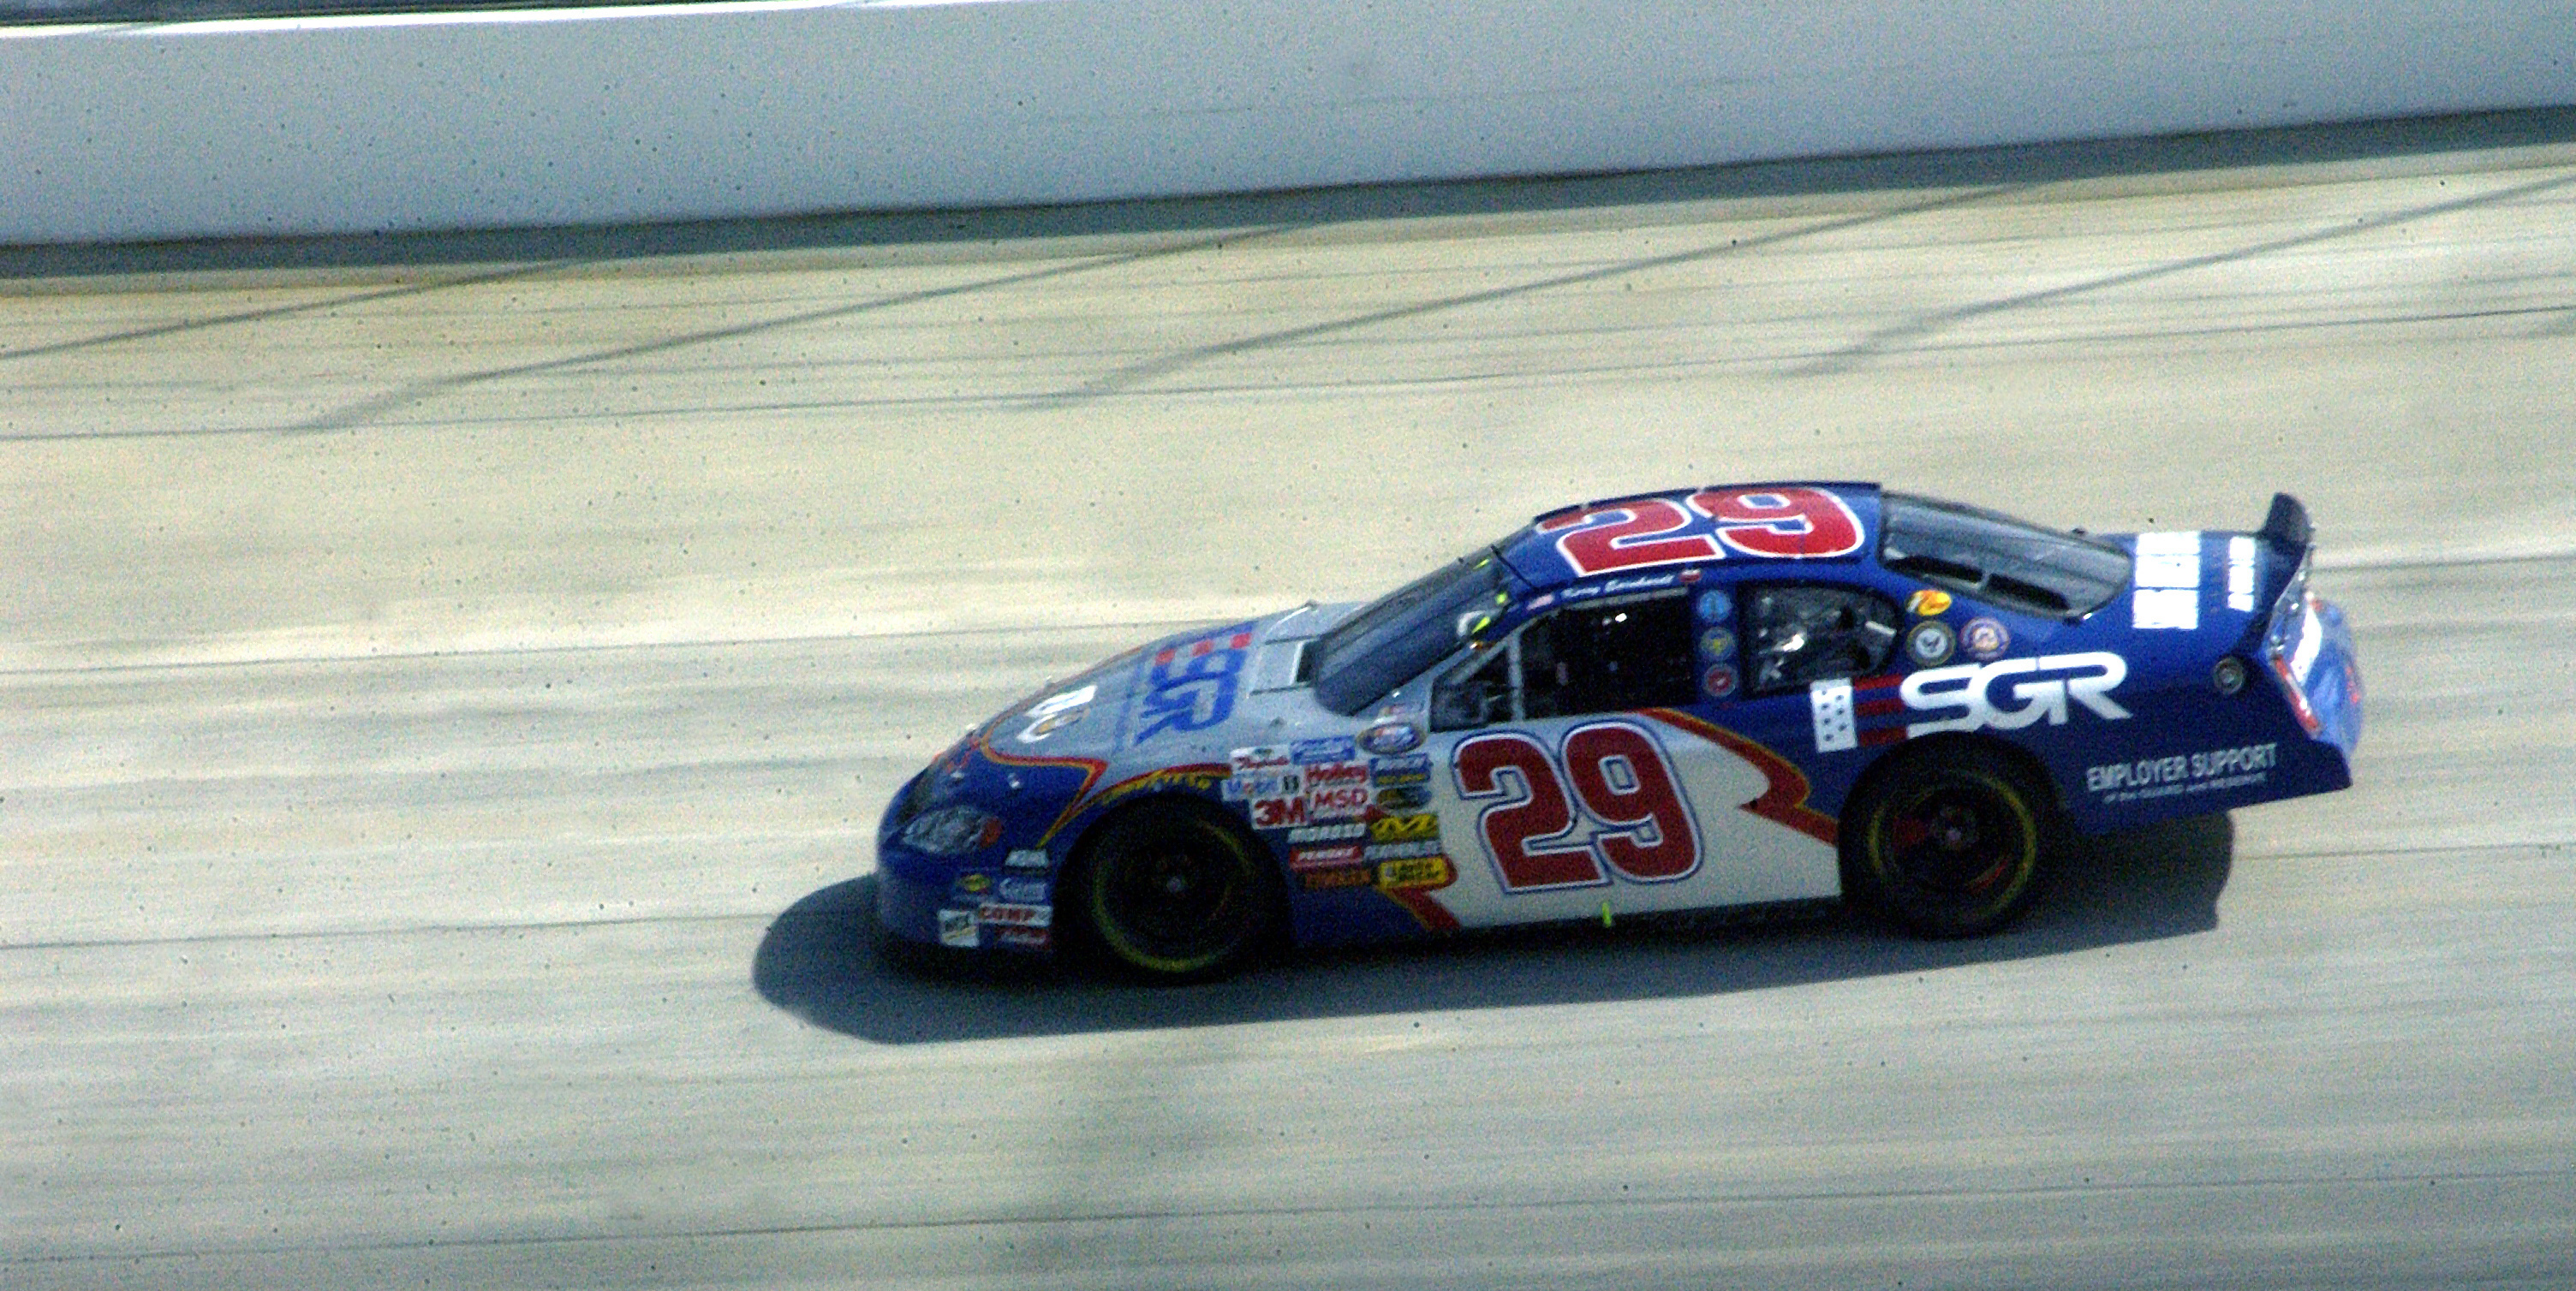 View photo of kerry earnhardt in the esgr car